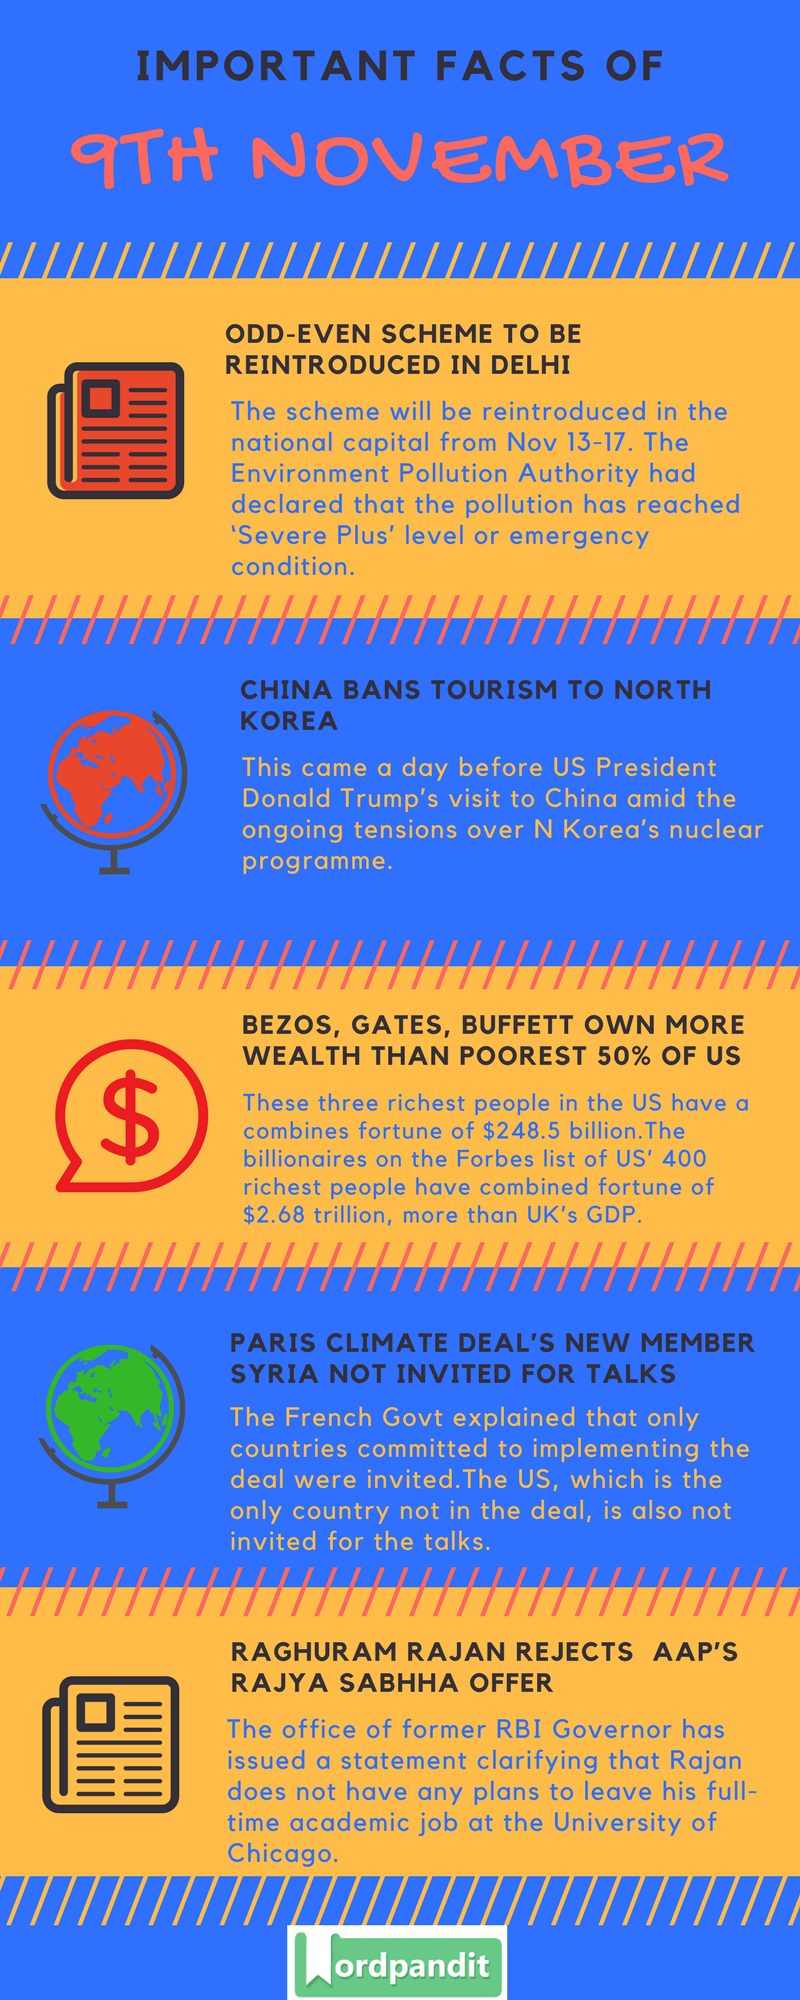 Daily-Current-Affairs-9-november-2017-Current-Affairs-Quiz-november-9-2017-Current-Affairs-Infographic